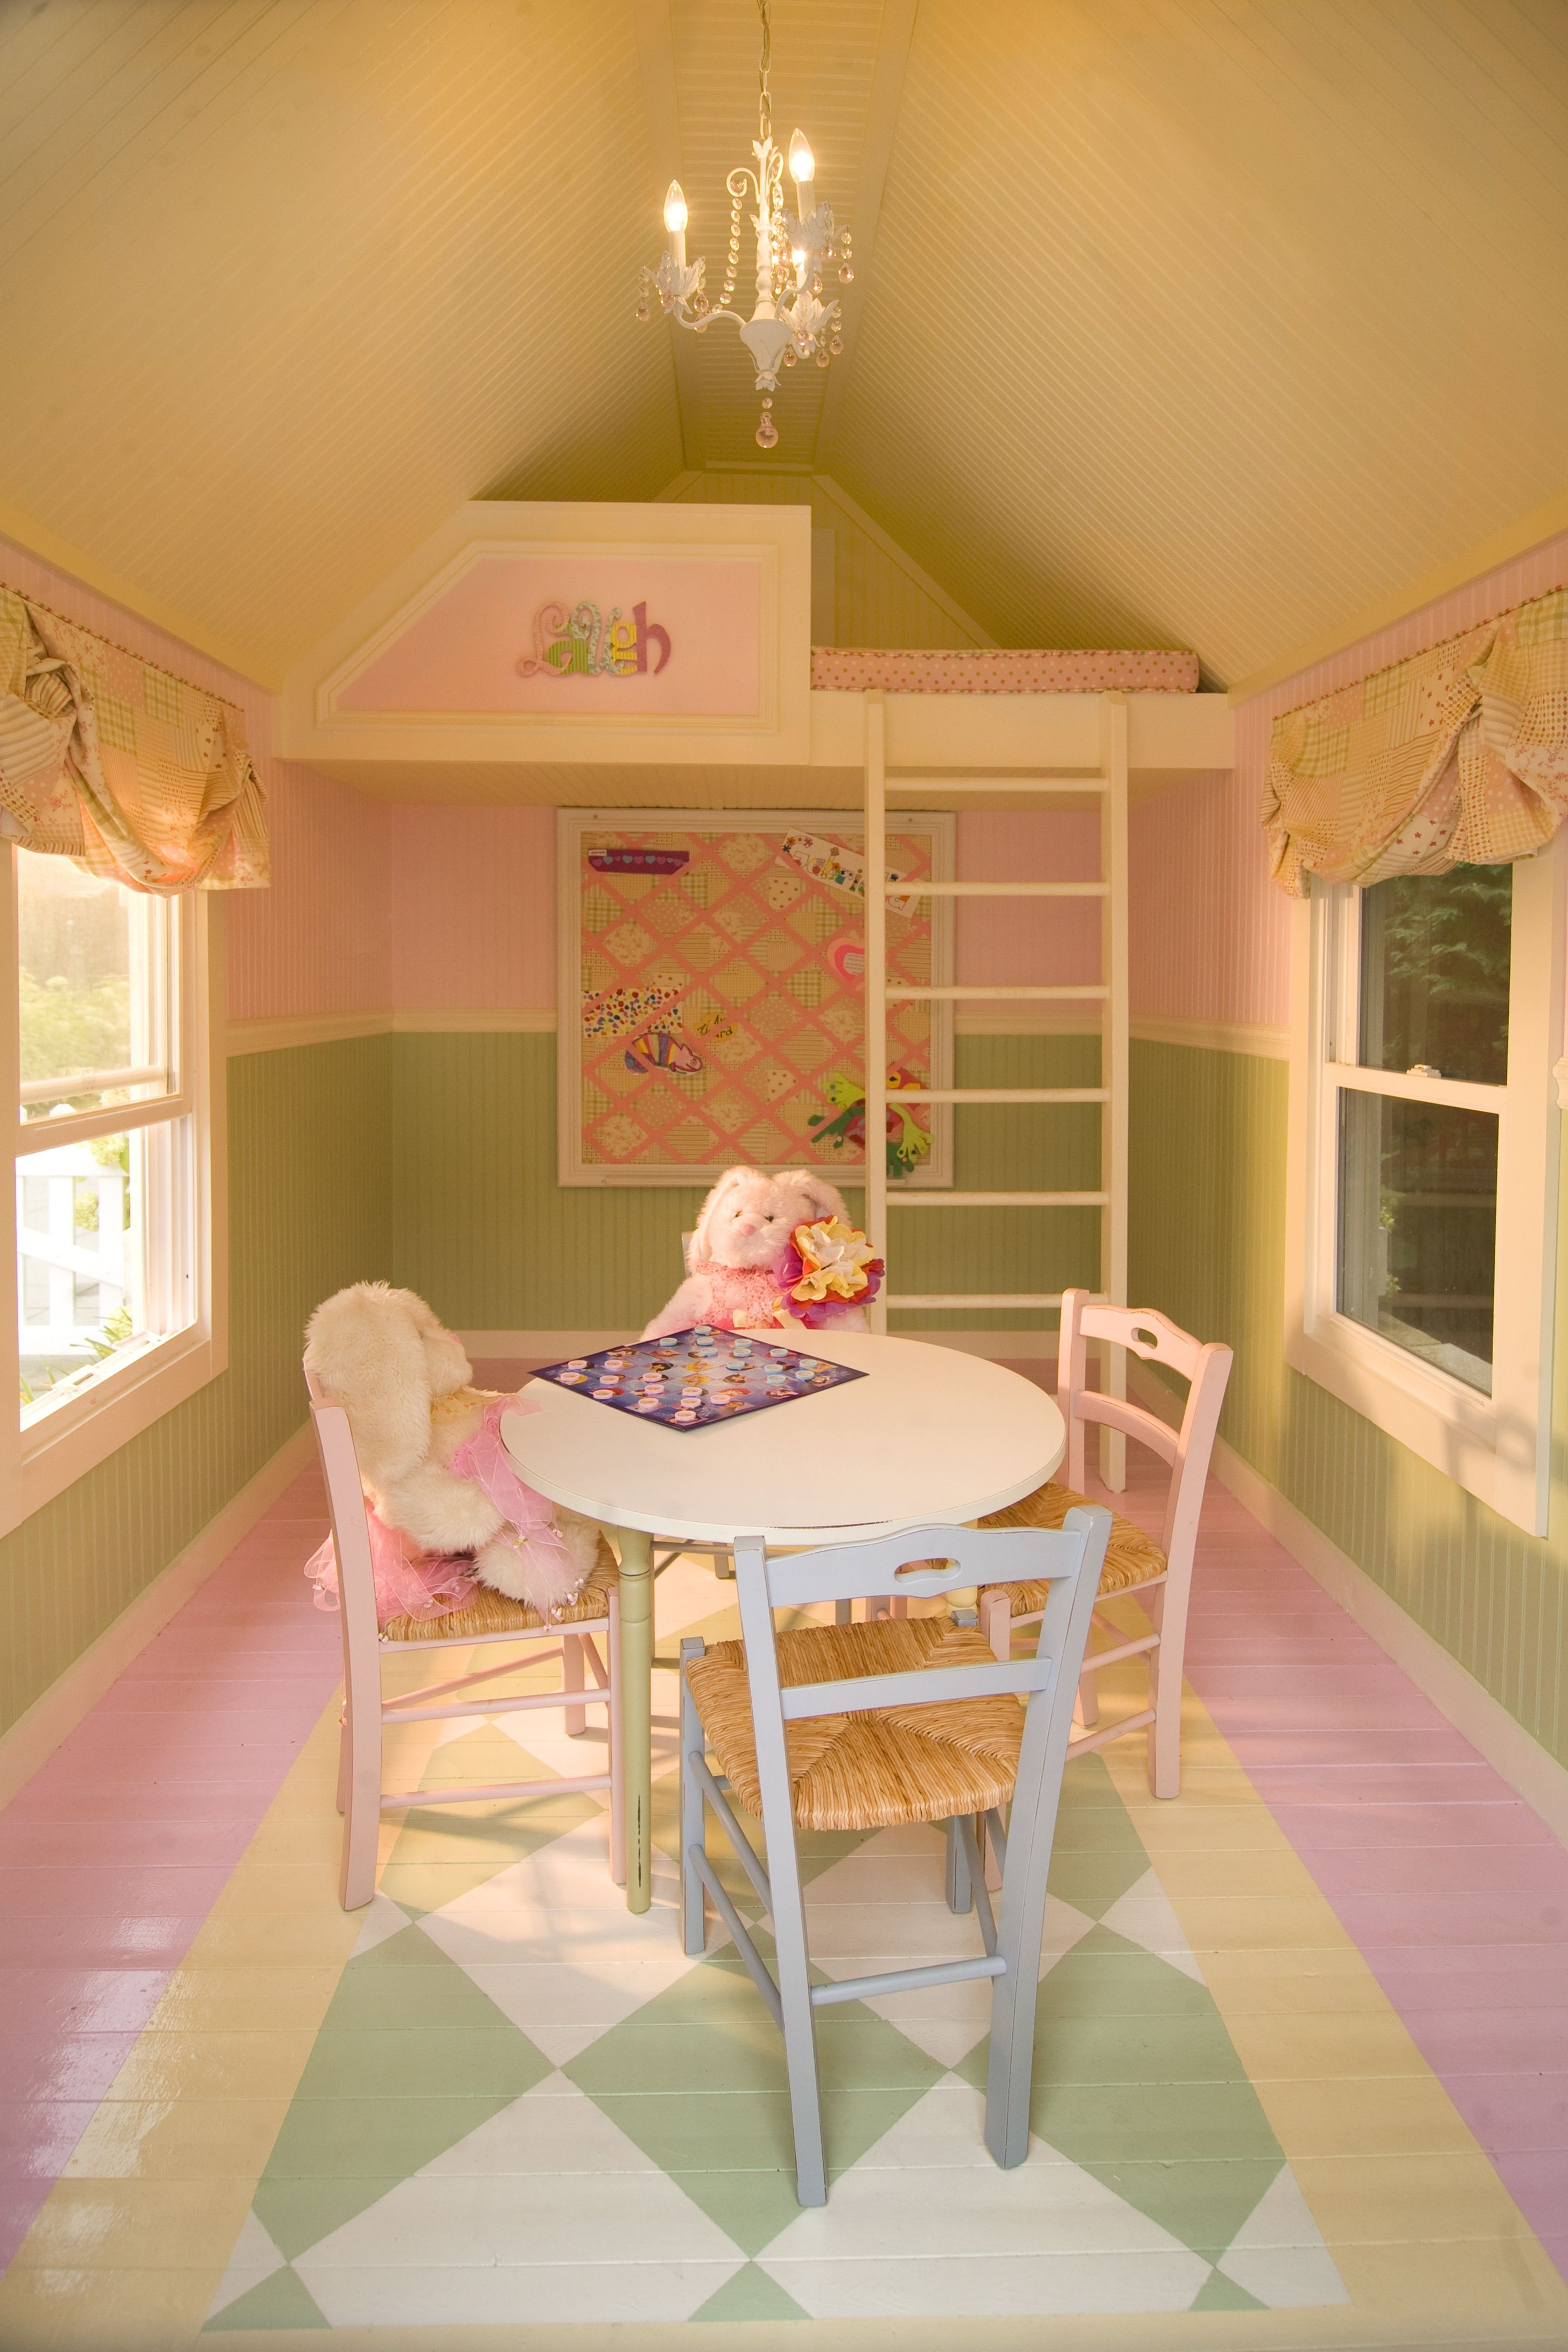 10 awesome playhouses that your children will love playhouses